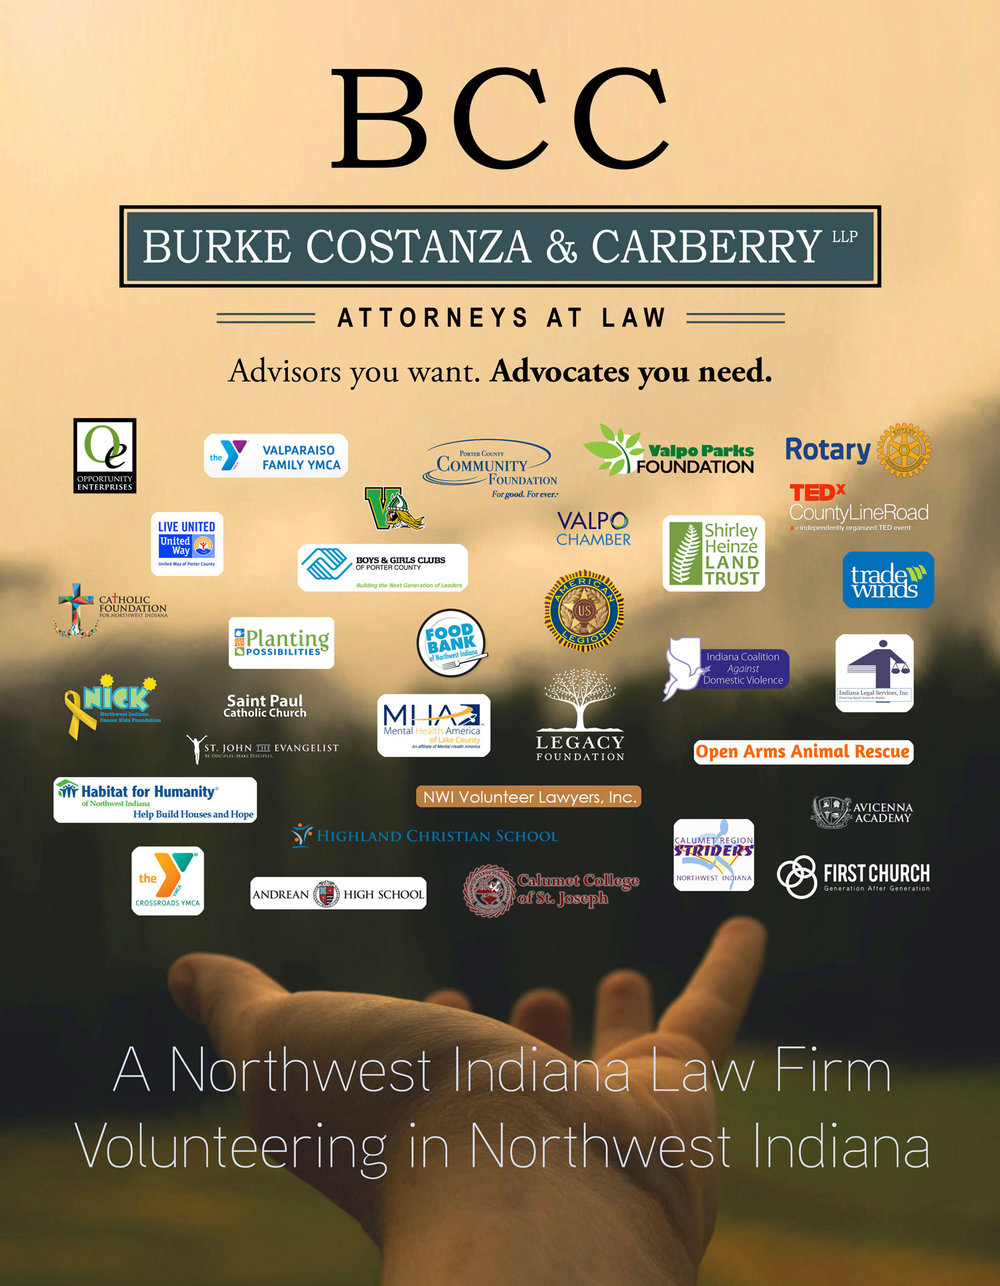 Organizations in which Burke Costanza & Carberry LLP's partners, associates, and staff have volunteered over the last year.